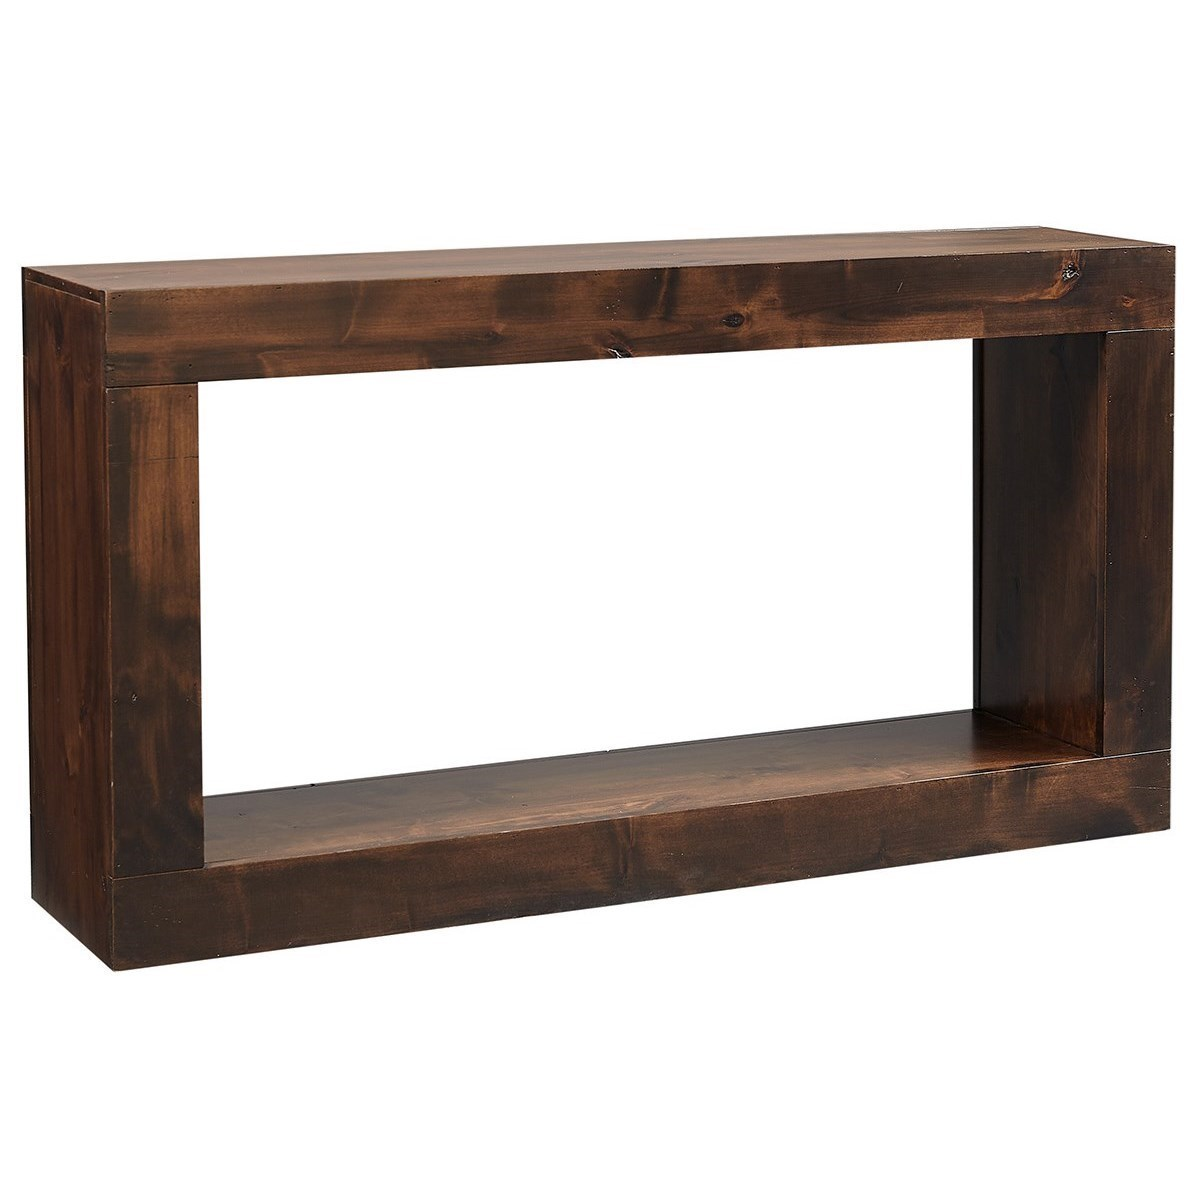 "Transitional 60"" Console Table with Lower Open Shelf"